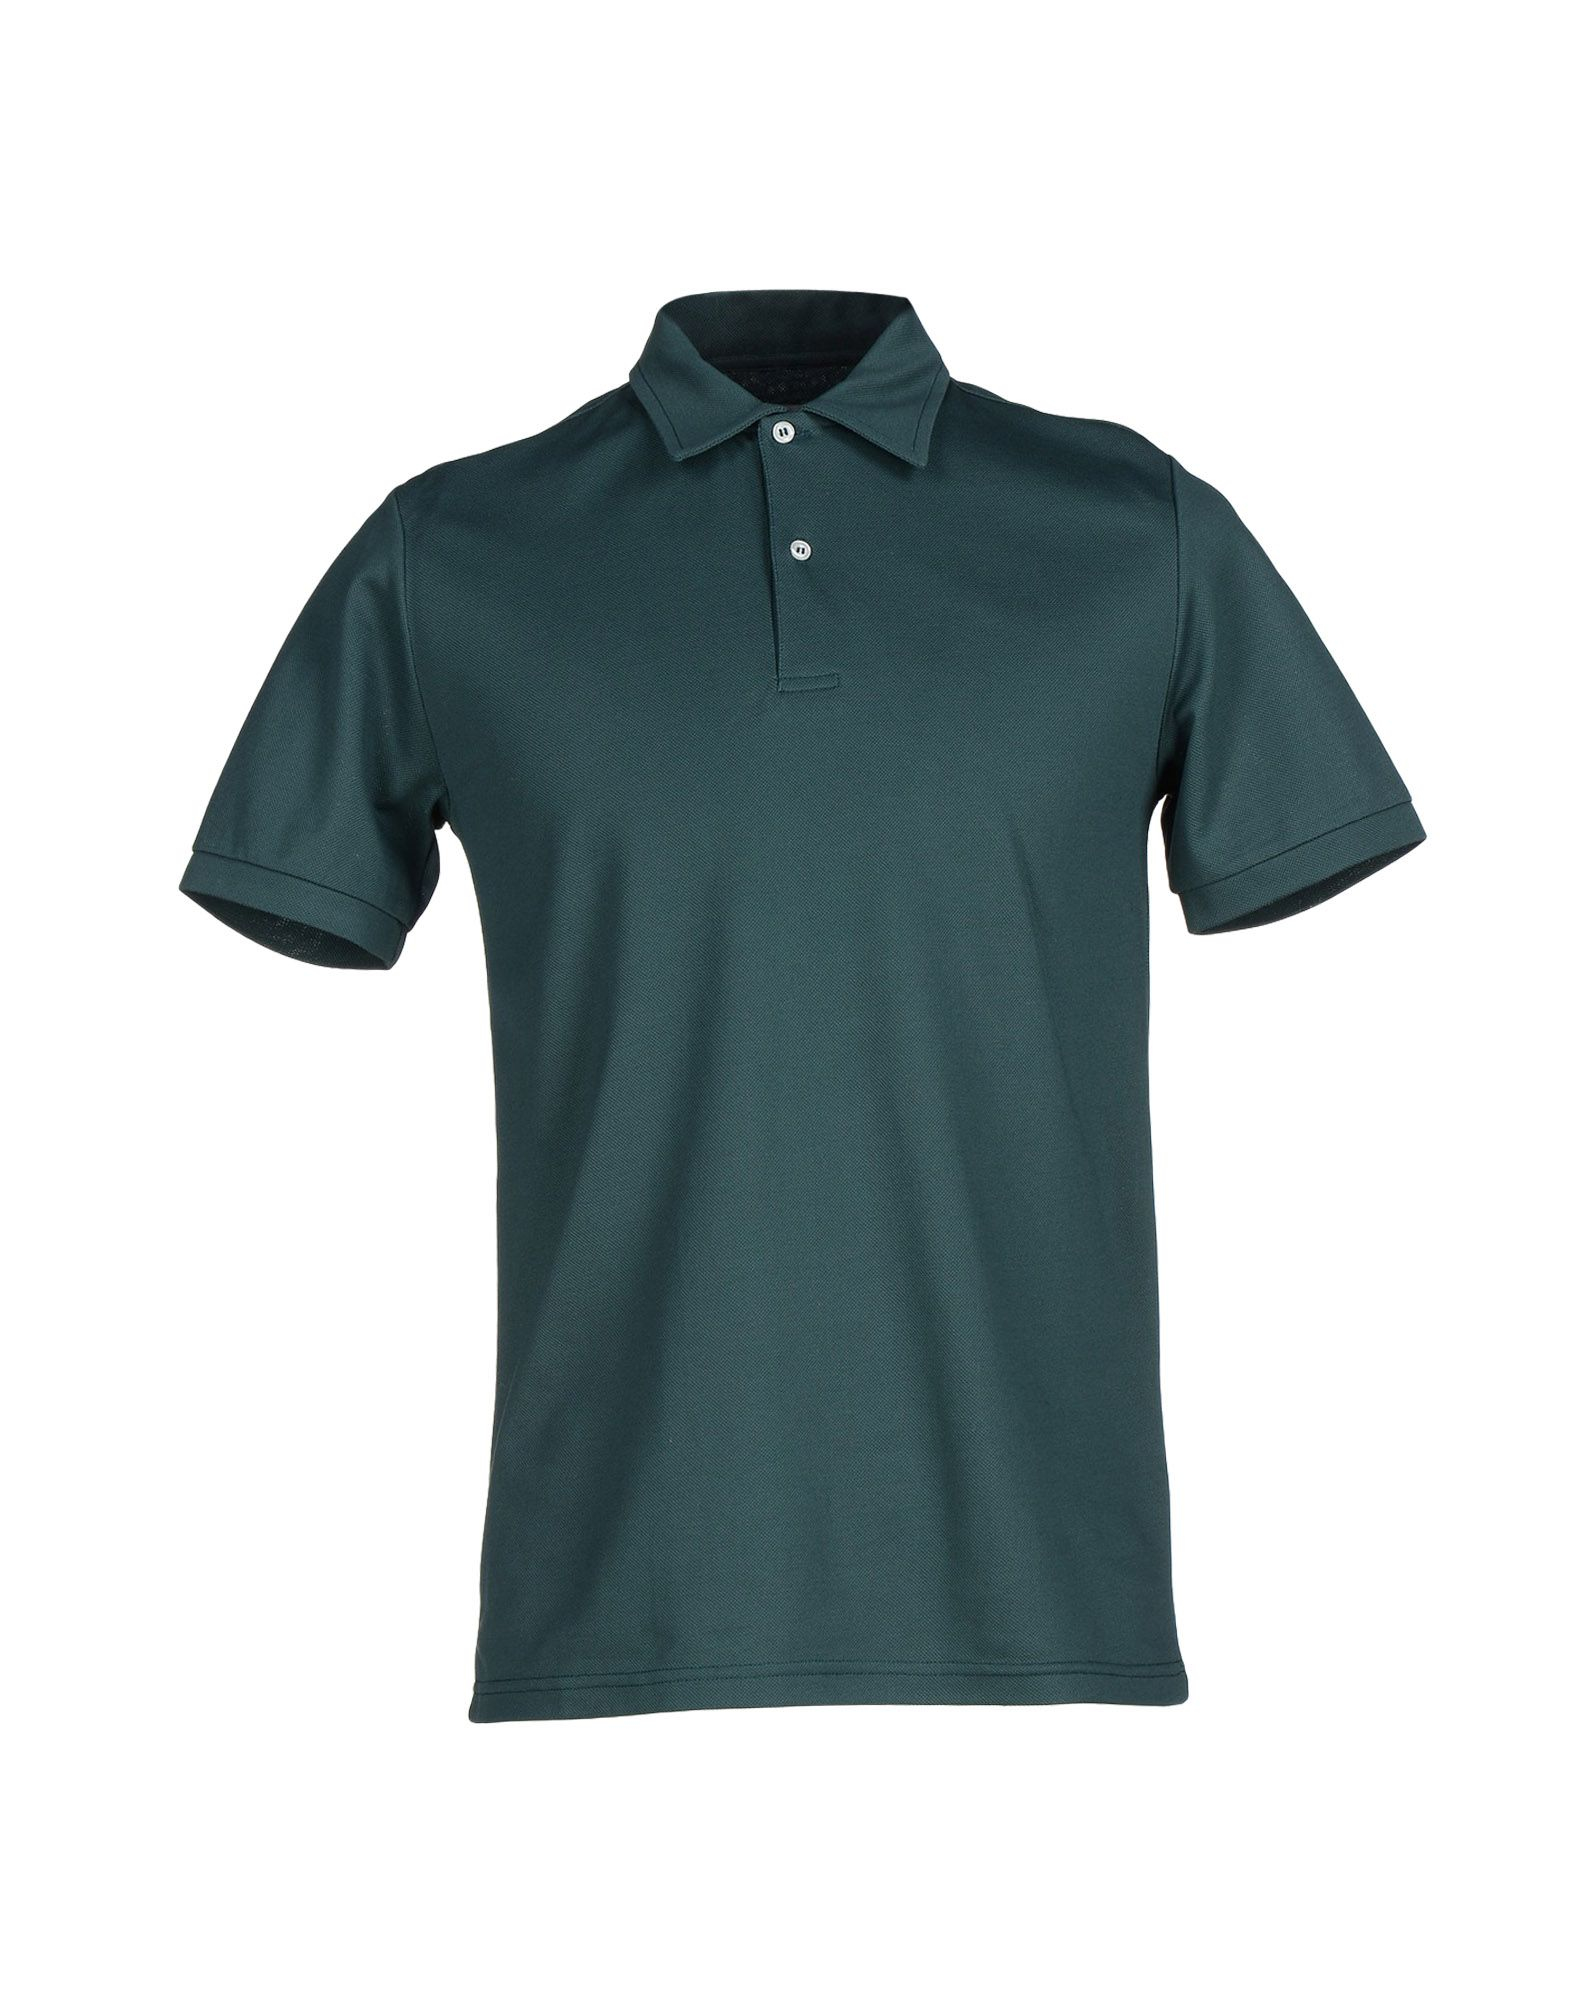 Les hommes polo shirt in teal for men dark green lyst for Mens teal polo shirt